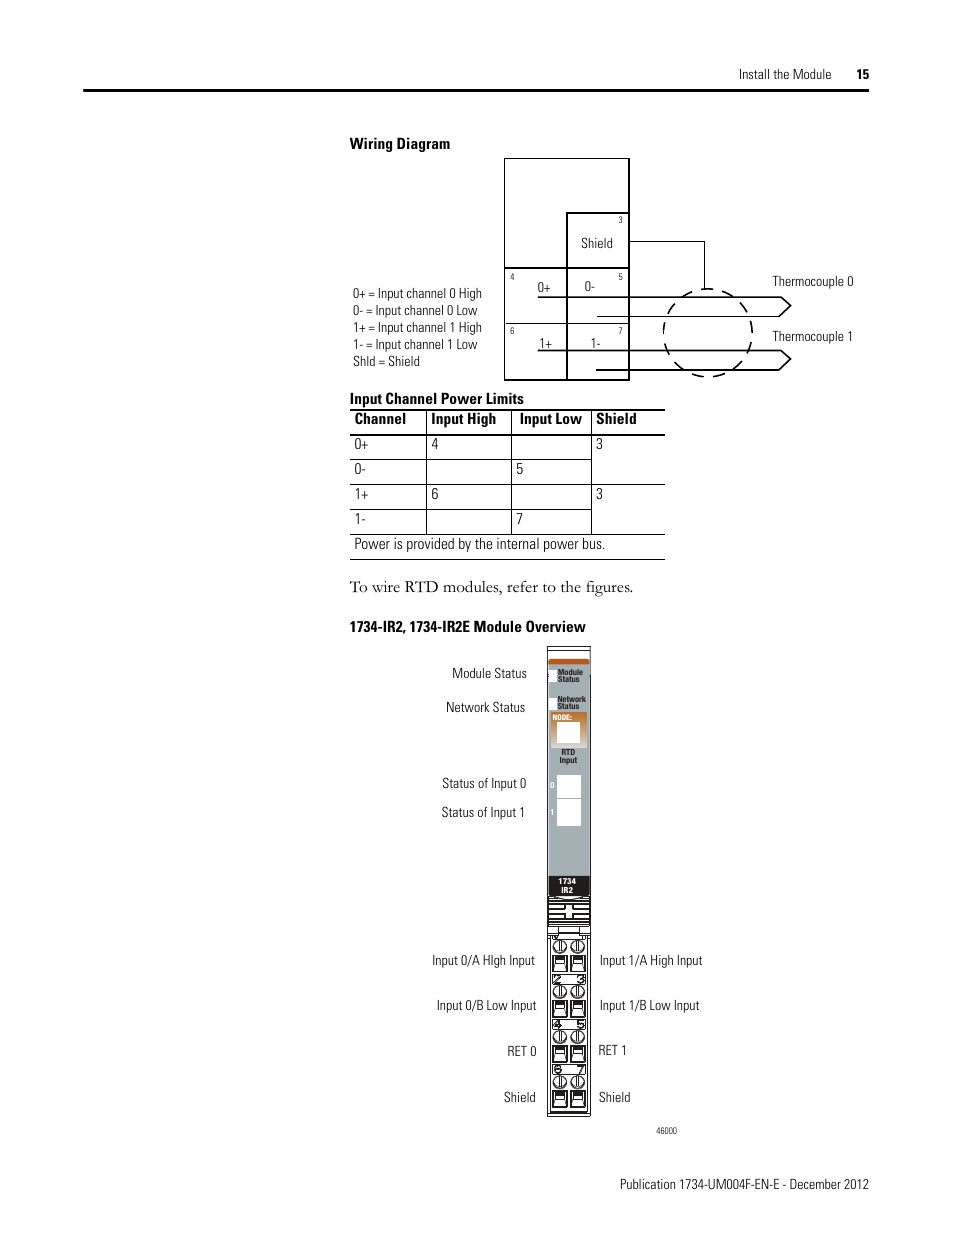 Manual 3 Wire Rtd Wiring Diagram Afriquetopnews Com